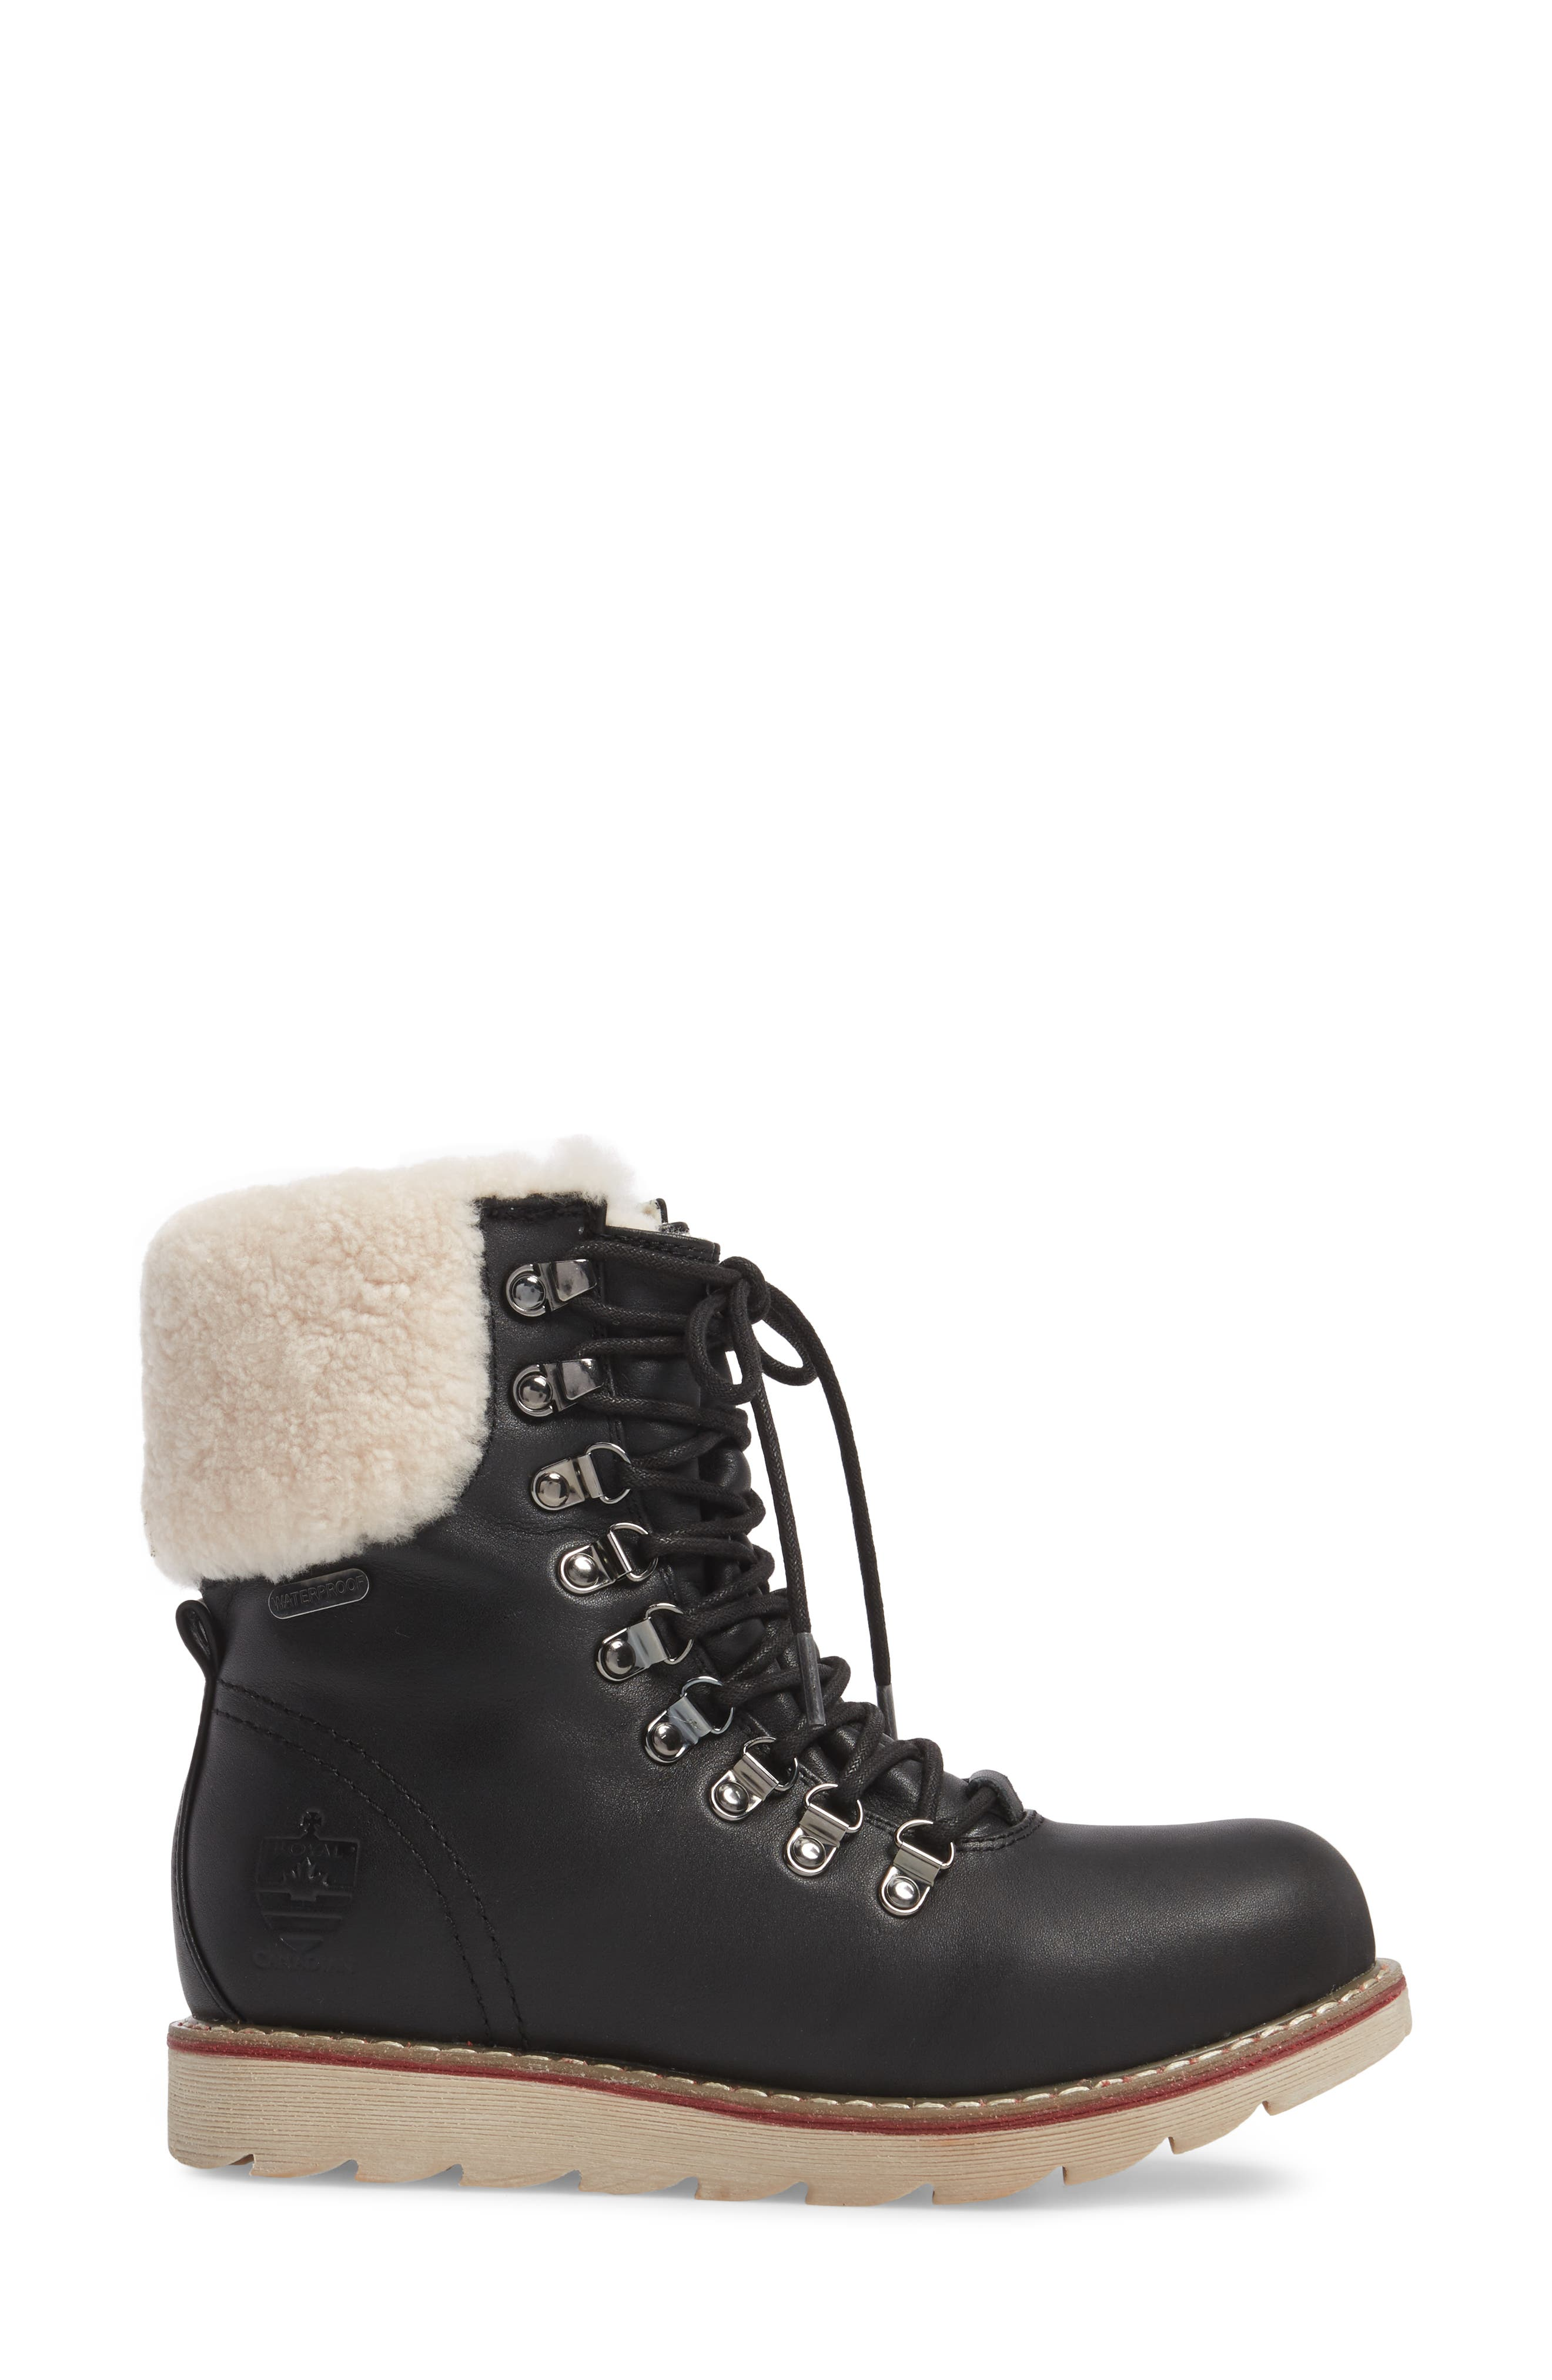 Lethbridge Waterproof Snow Boot with Genuine Shearling Cuff,                             Alternate thumbnail 3, color,                             BLACK LEATHER